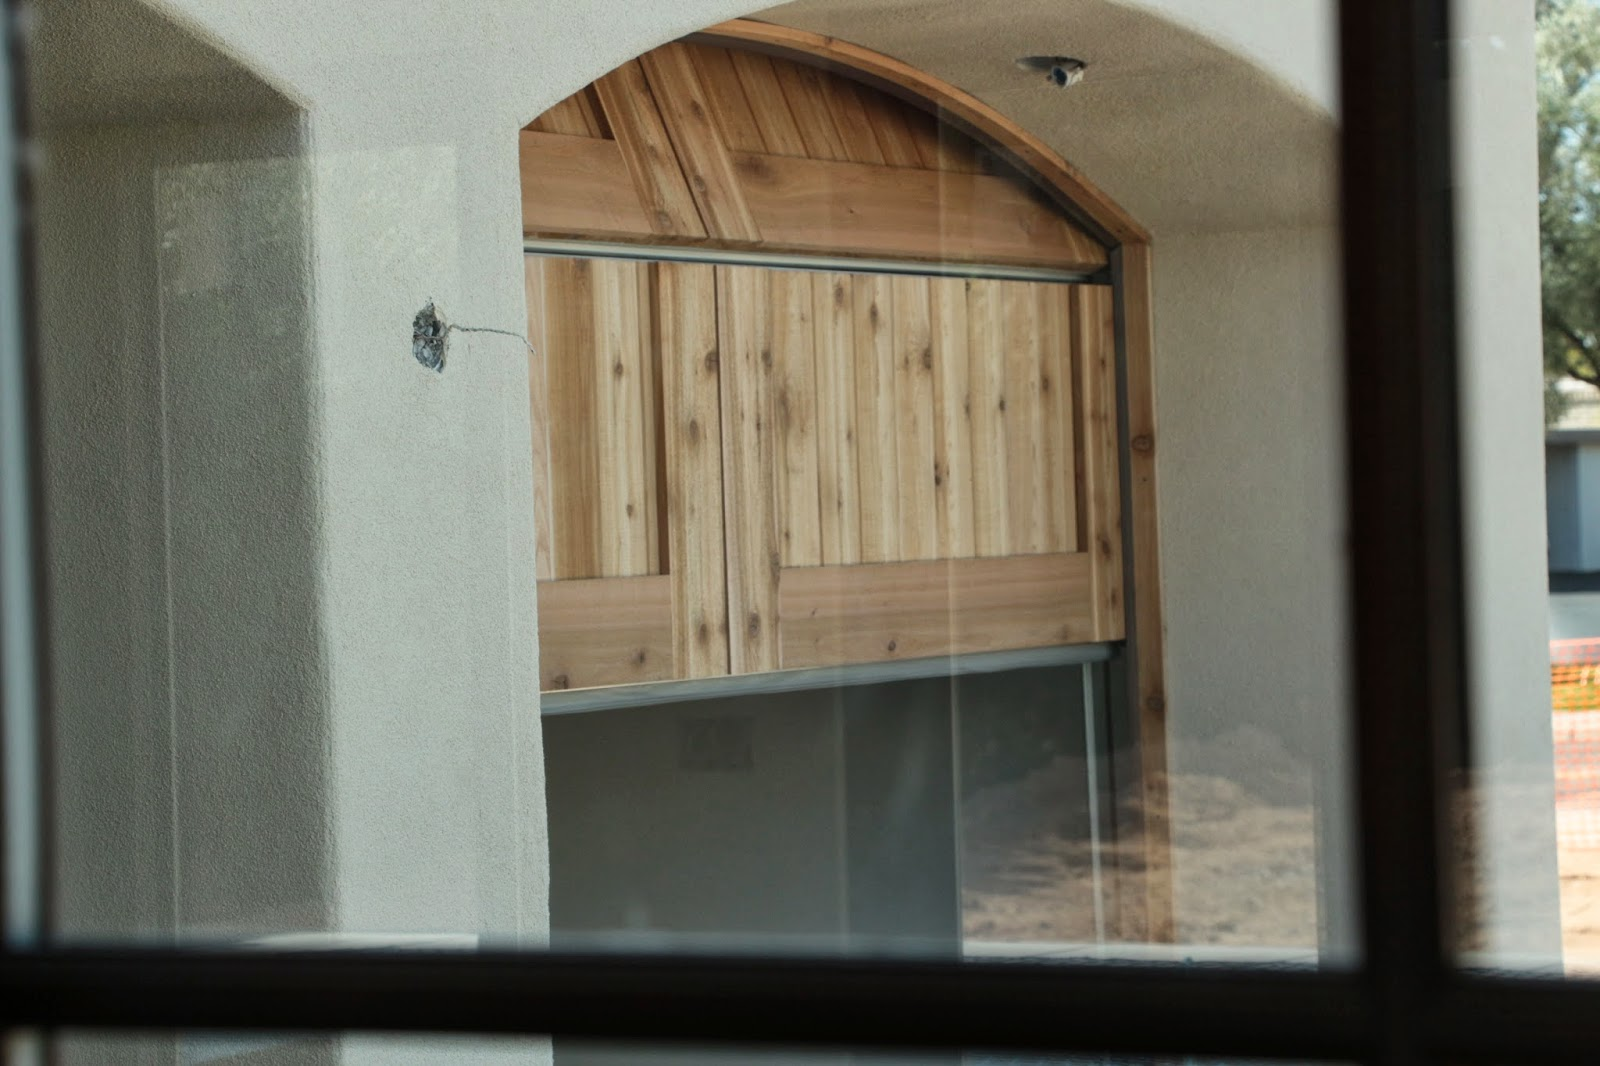 cedar garage doors, roll up garage doors that look like carriage doors